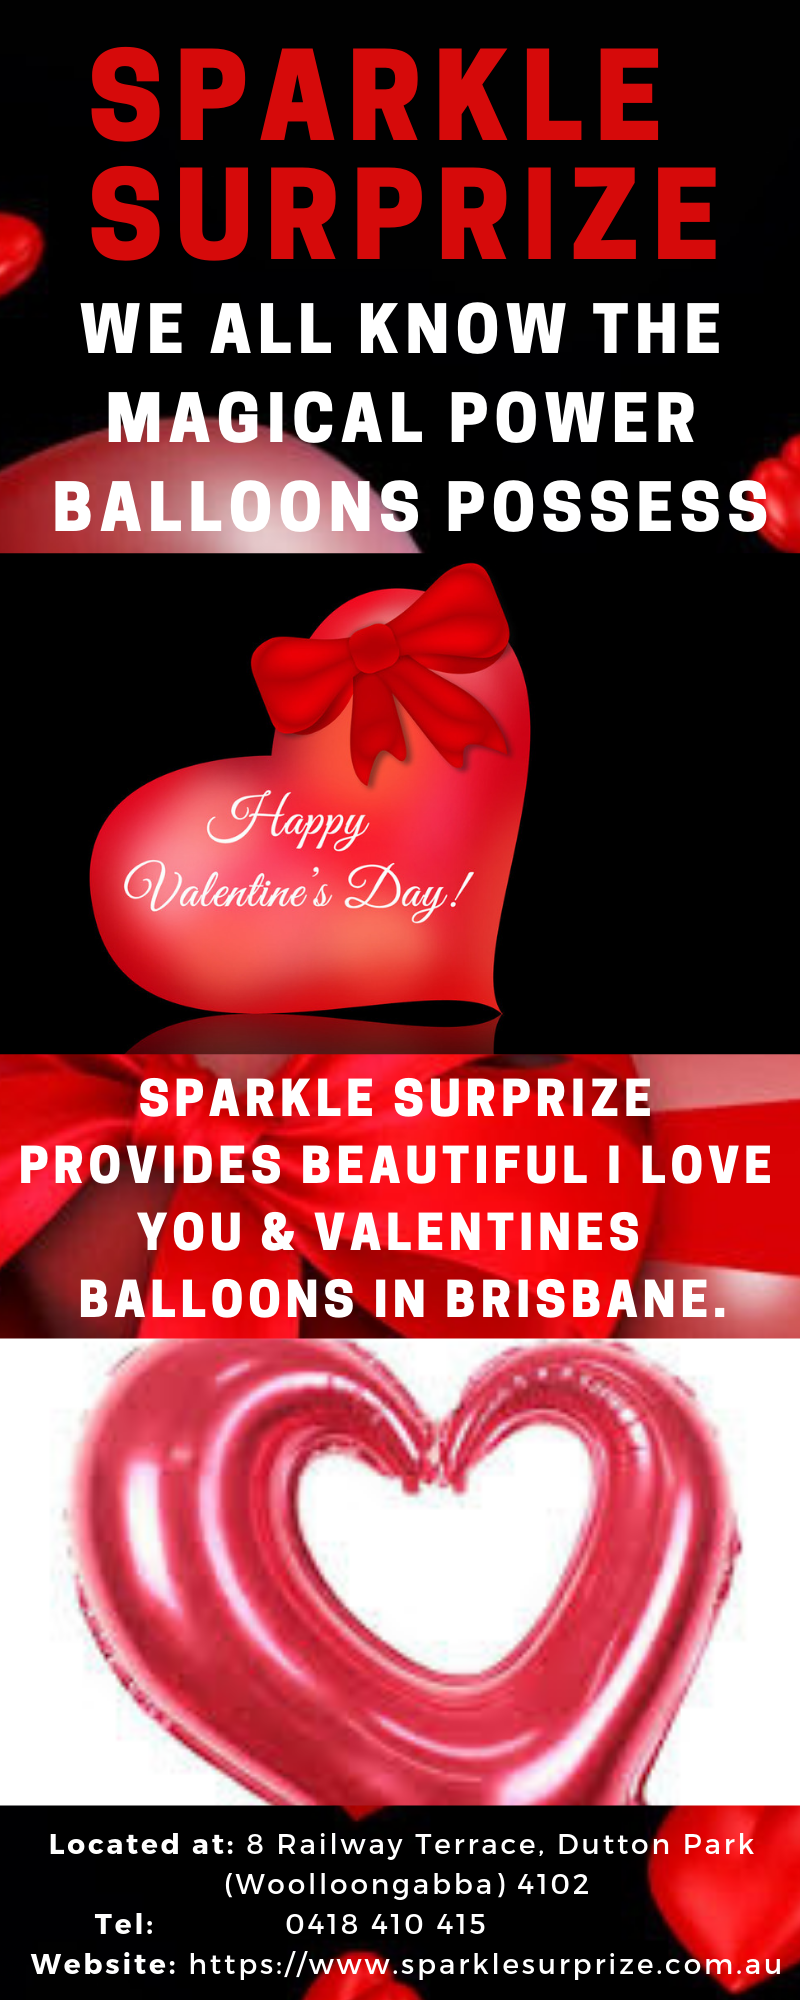 Valentine's Day balloon gifts, It's unique Gift Ideas of Romance & Love delivered. Send